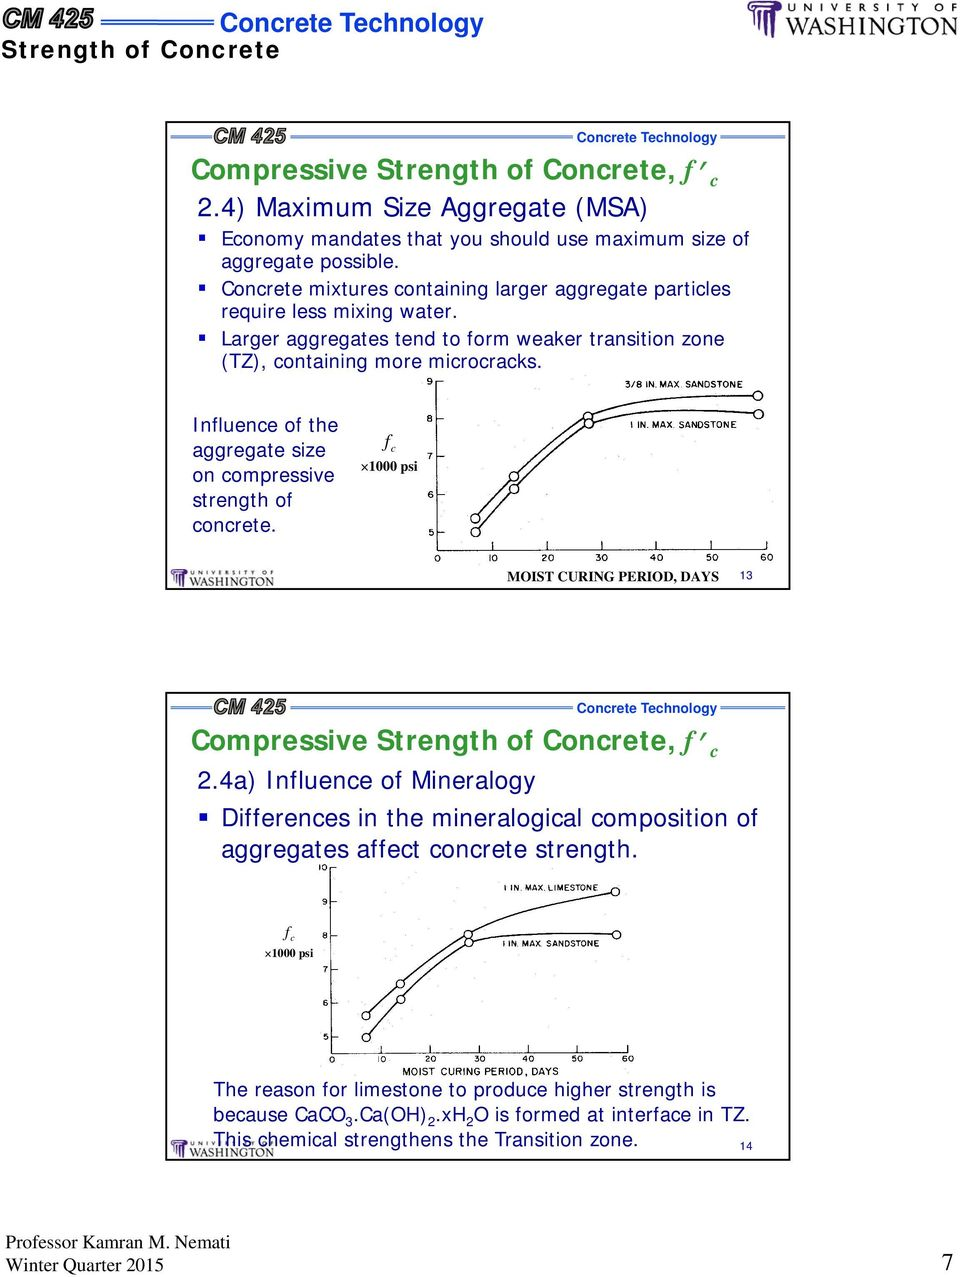 Influence of the aggregate size on compressive strength of concrete. f c 1000 psi MOIST CURING PERIOD, DAYS 13 Compressive, f c 2.